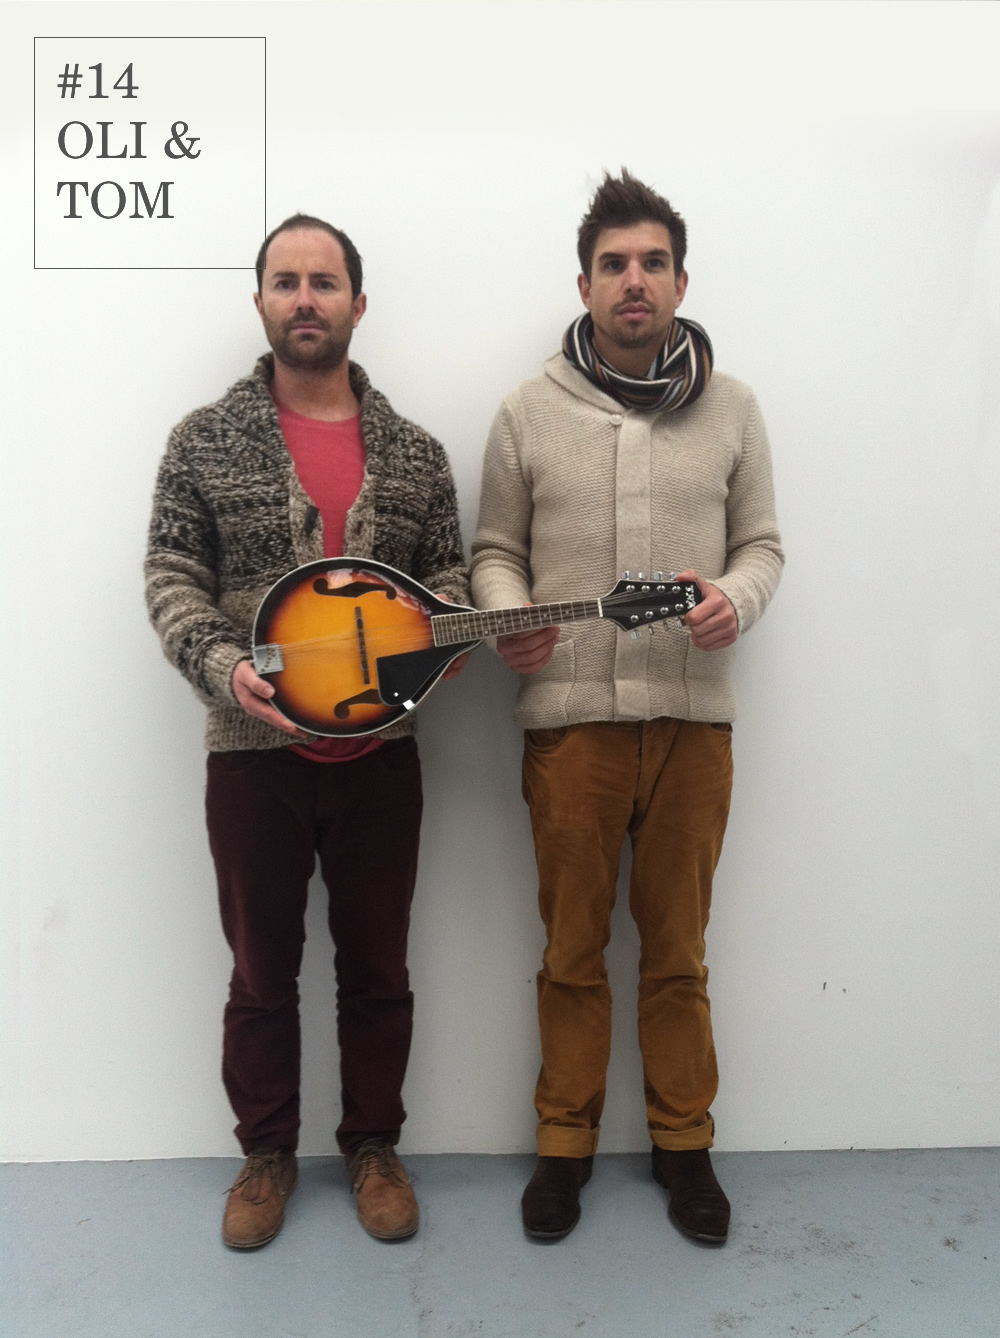 The first double Fash Off honour belongs to Tom and Oli, the comedy duo are so in sync that even their colour palettes arecomplimentary.   In what looks like it could be the test shot for their debut album of folk songs, they layer clothing for a cosy and casual look perfect for the cold weather. We expect to hear their demo any day now…    Oli     Thick knit :Zara         Red trousers :Zara         Red t-shirt: River Island         Stubble: Locally sourced       Tom     Top: Reiss       Trousers: Zara       Hair: Bed